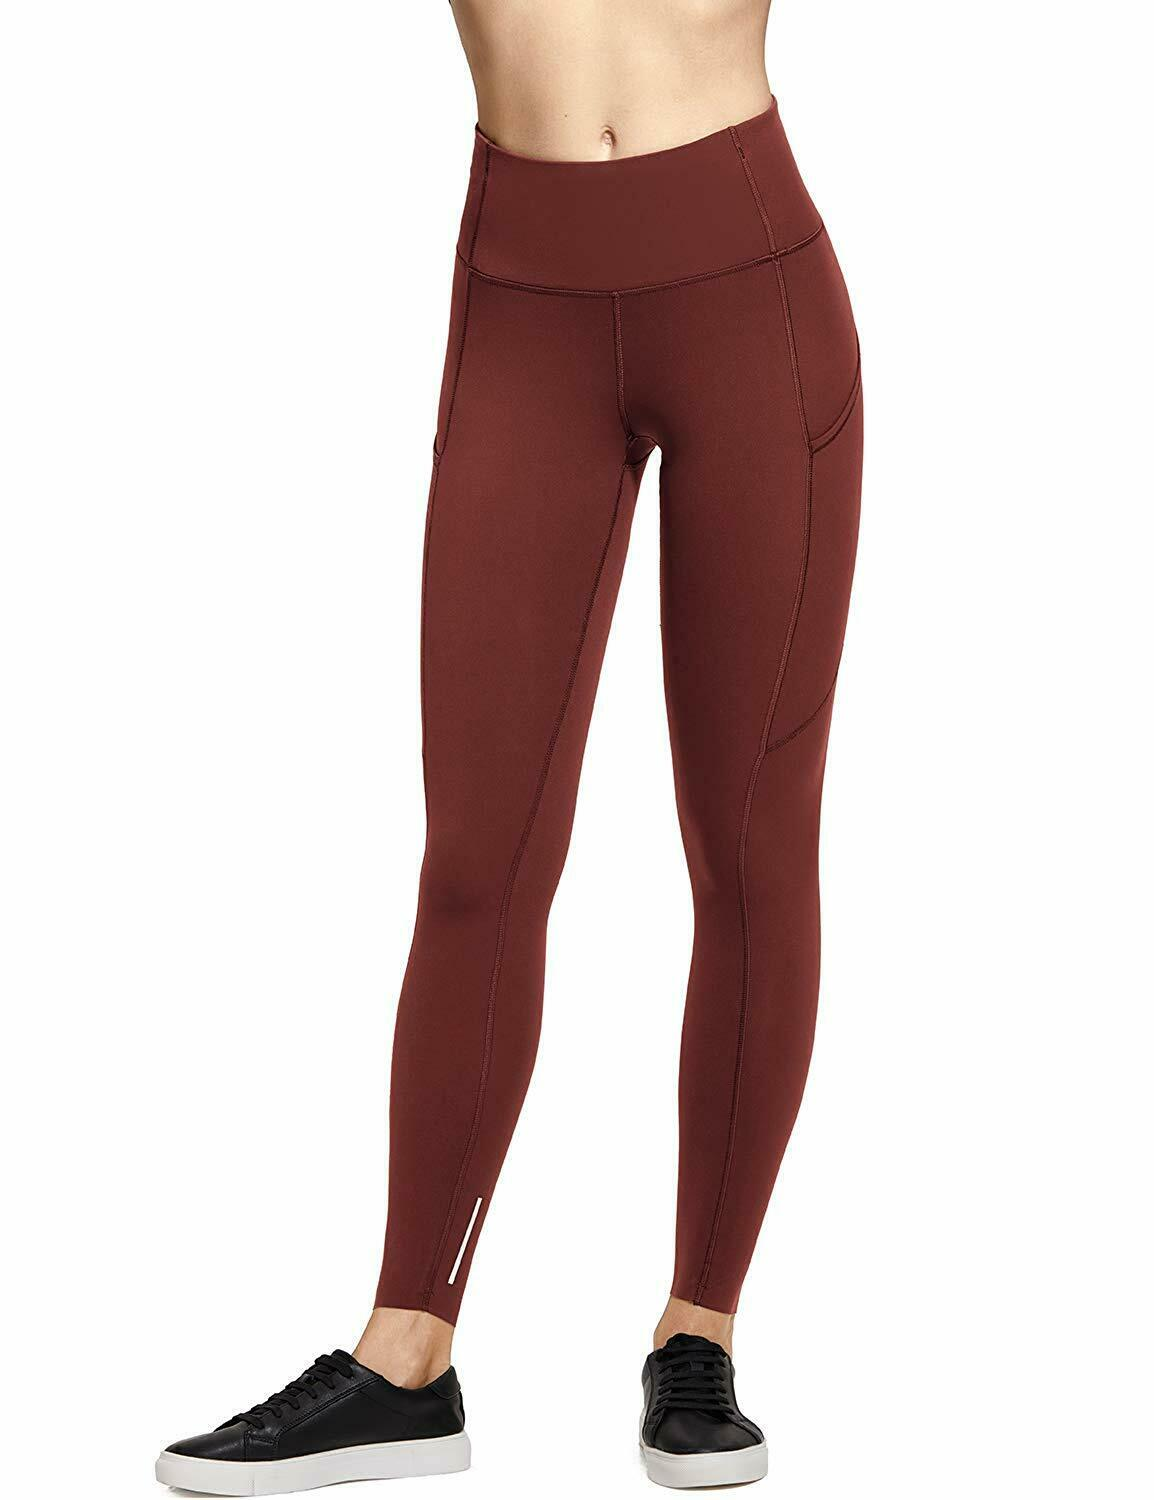 CRZ YOGA Women's Naked Feeling High-Rise Tight Training Yoga Leggings